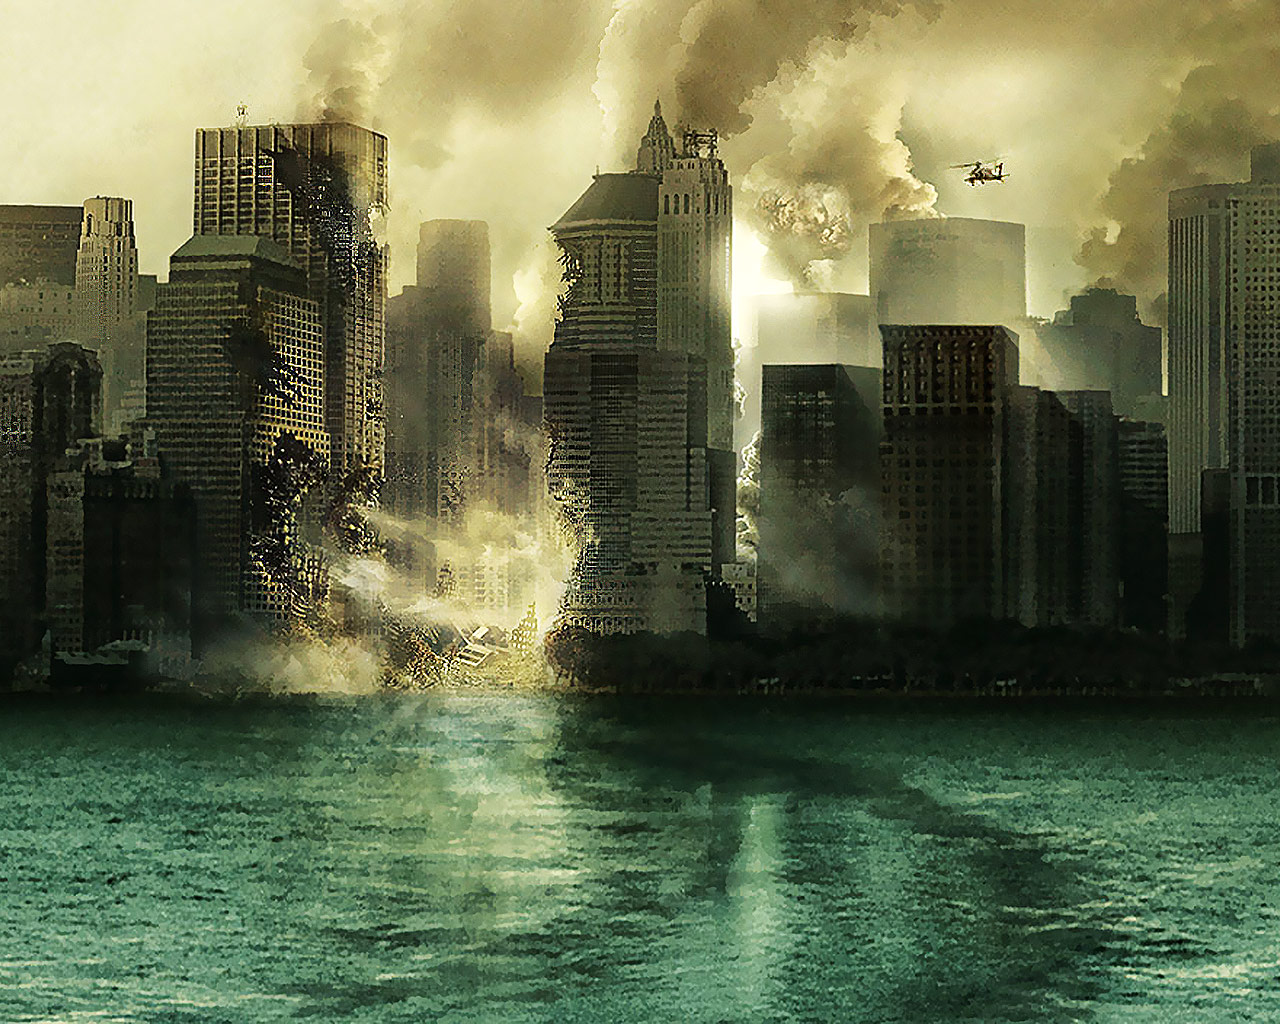 the 2012 doomsday A frustrated writer struggles to keep his family alive when a series of global catastrophes threatens to annihilate mankind.